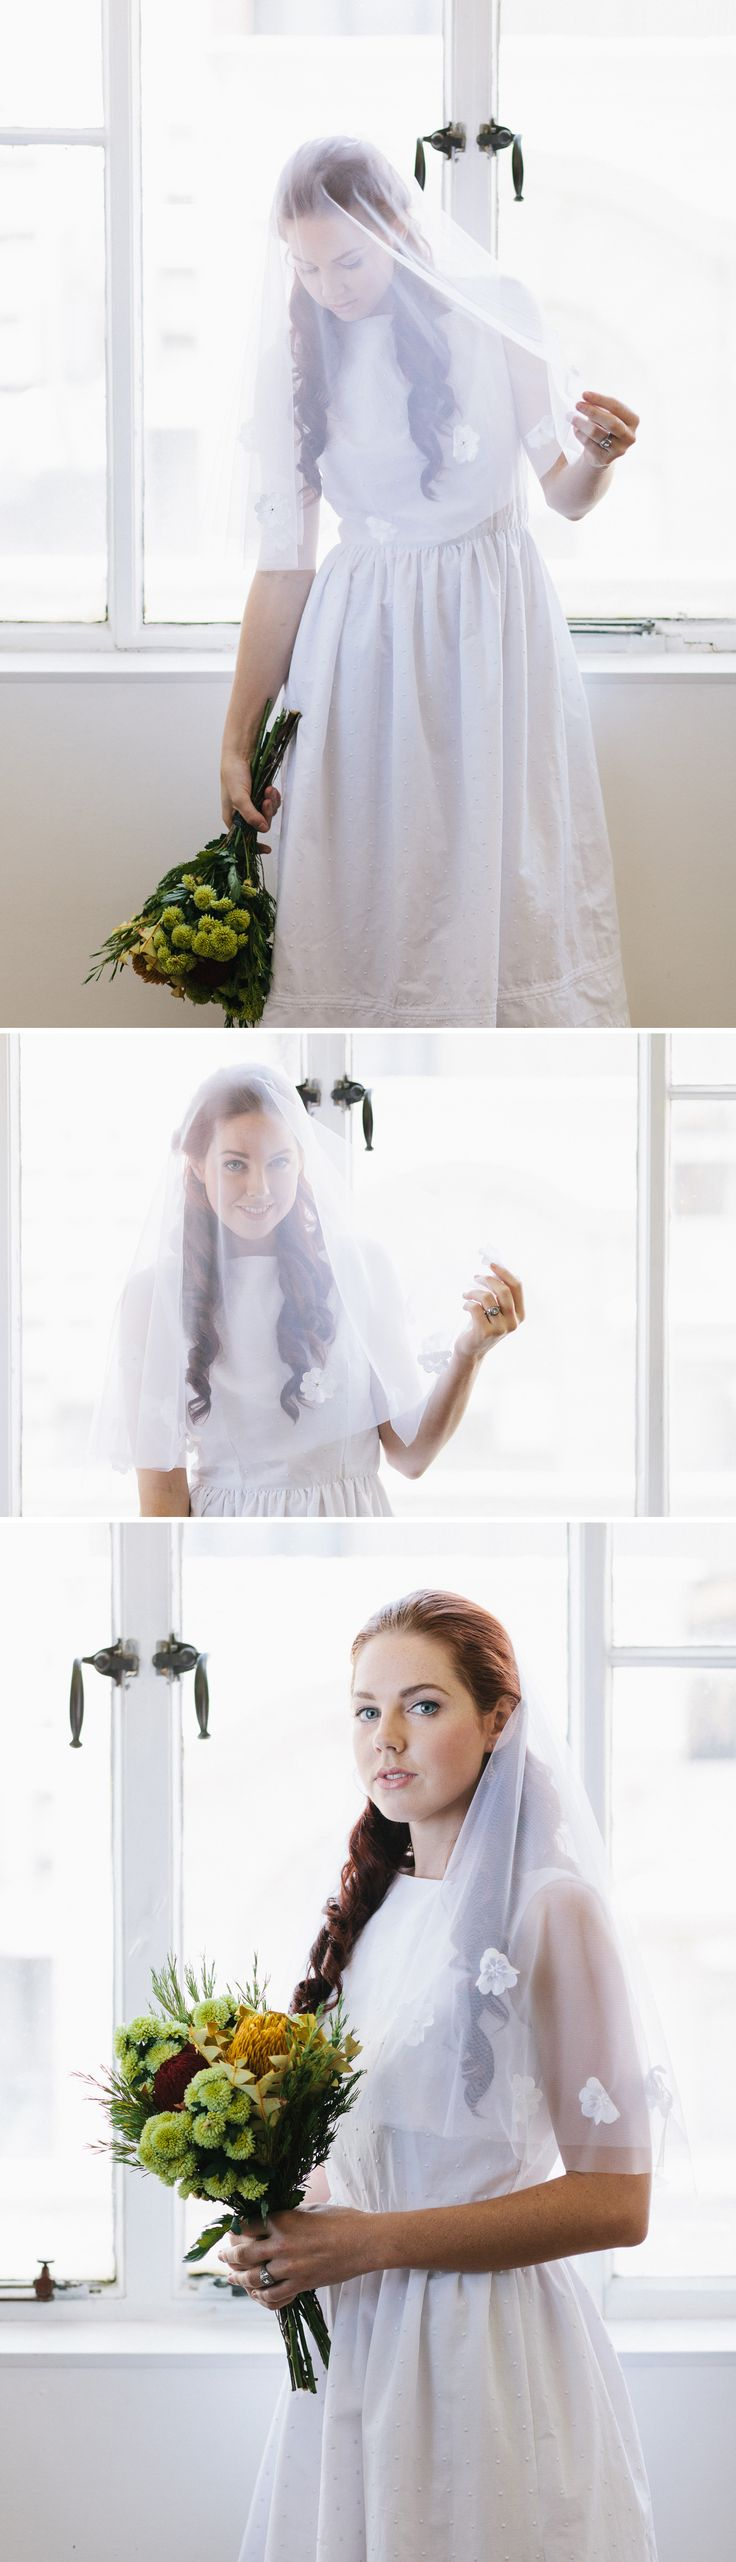 What about a white vintage veil for your wedding?